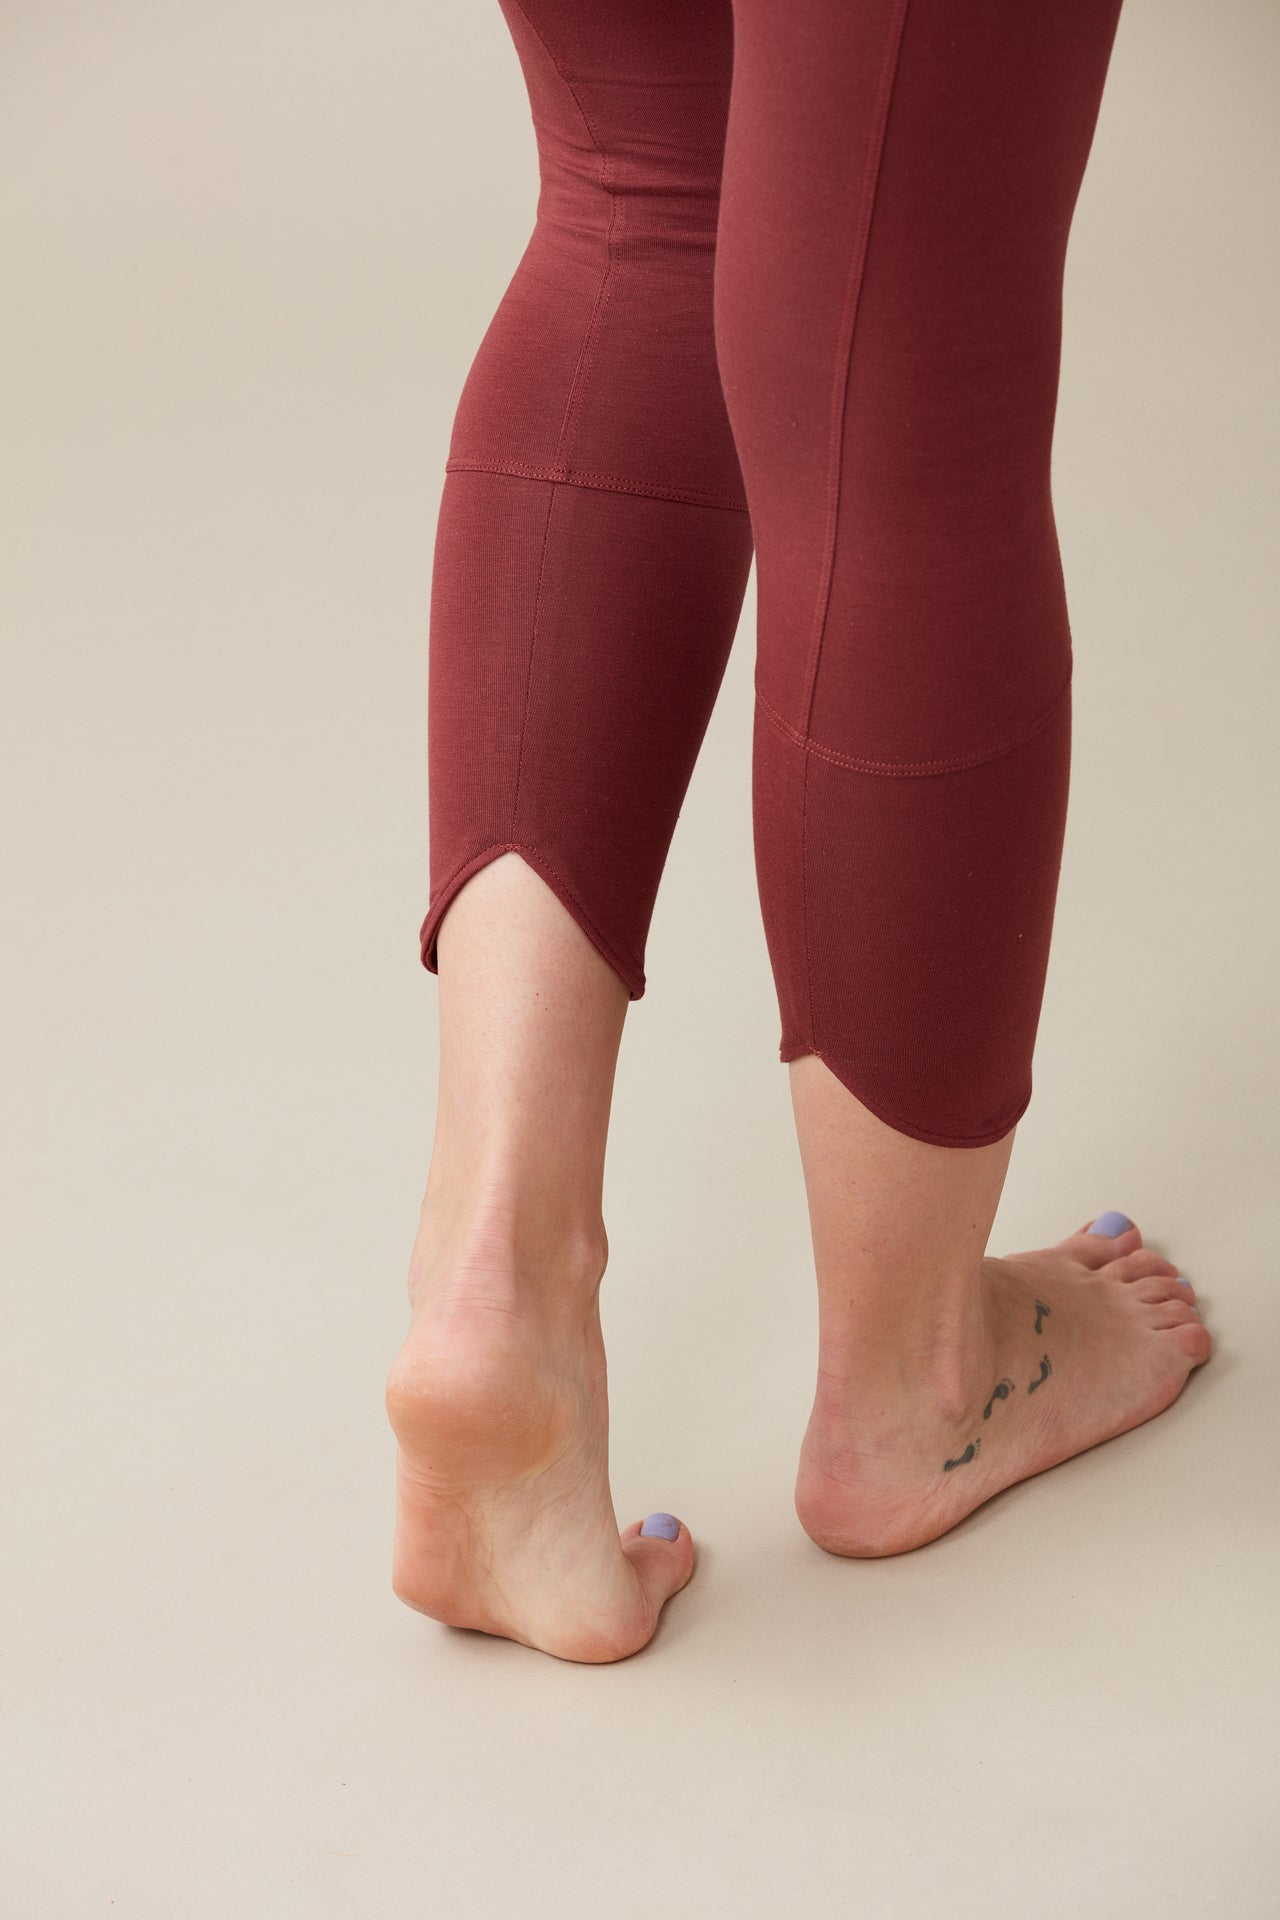 LANDO GRACE LEGGINGS (Kiremit)